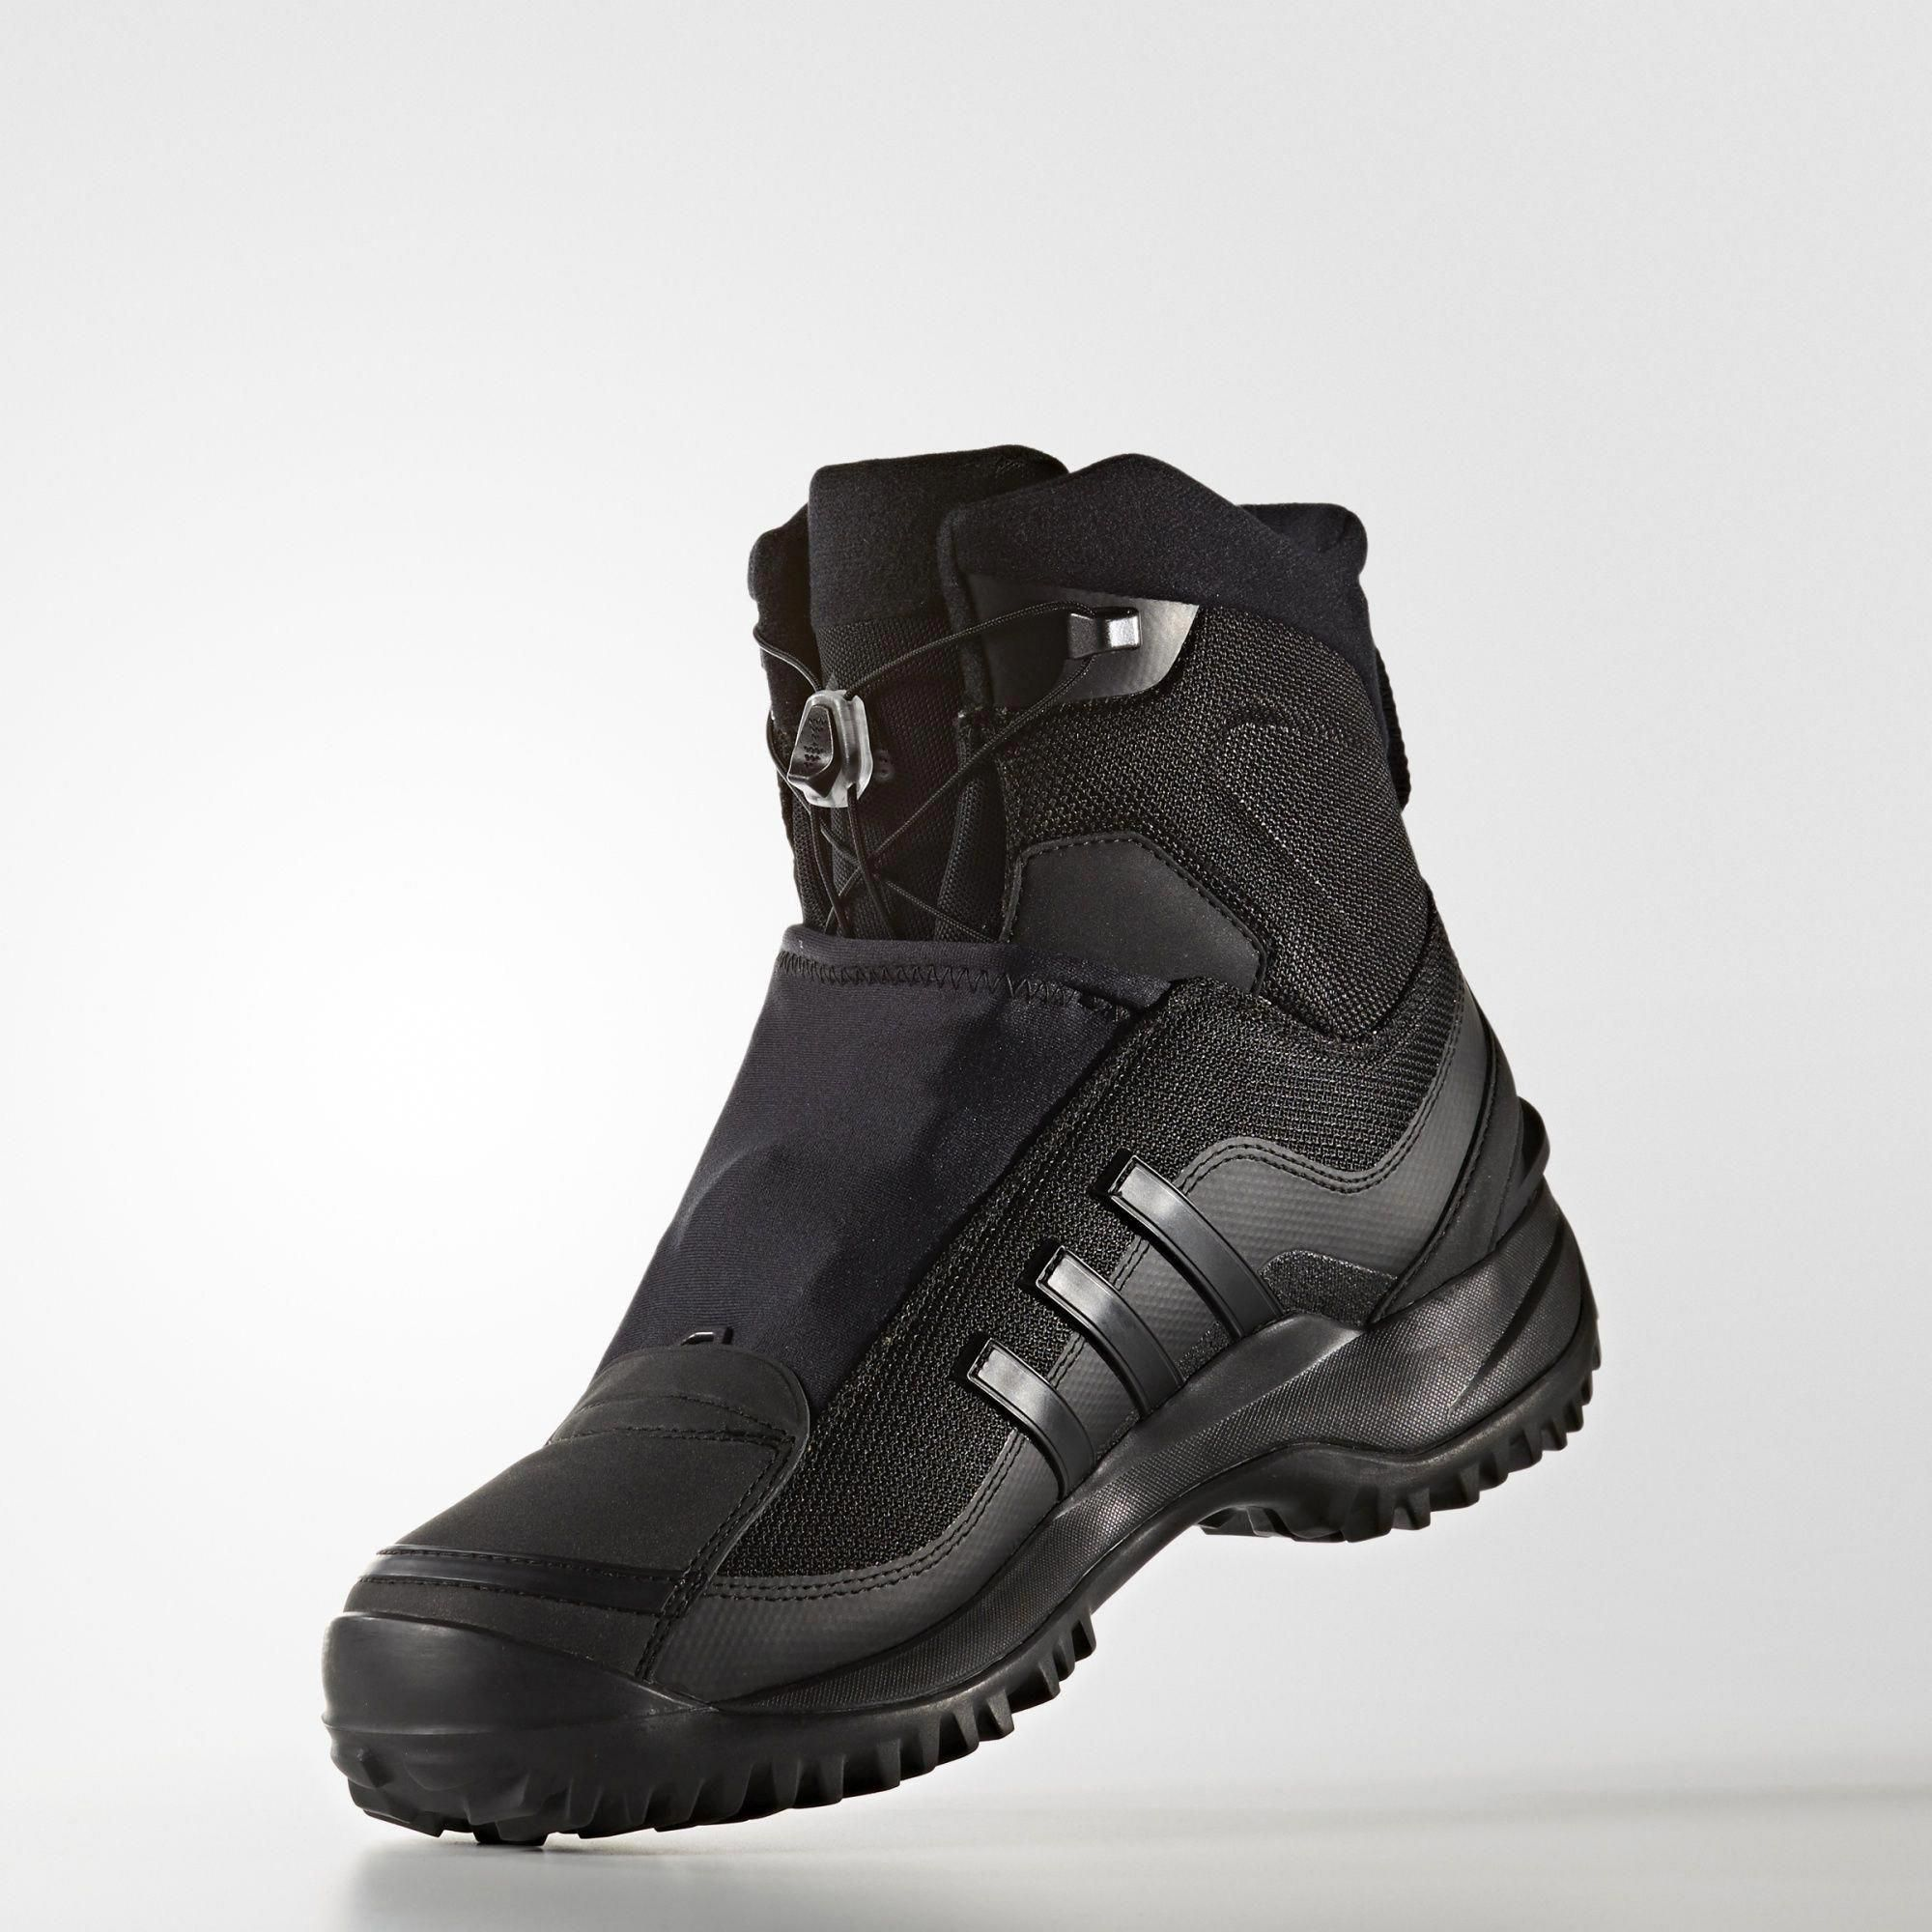 25217ec76fc adidas - Terrex Conrax CW CP Boots #hikeboots | Hiking Gear in 2019 ...